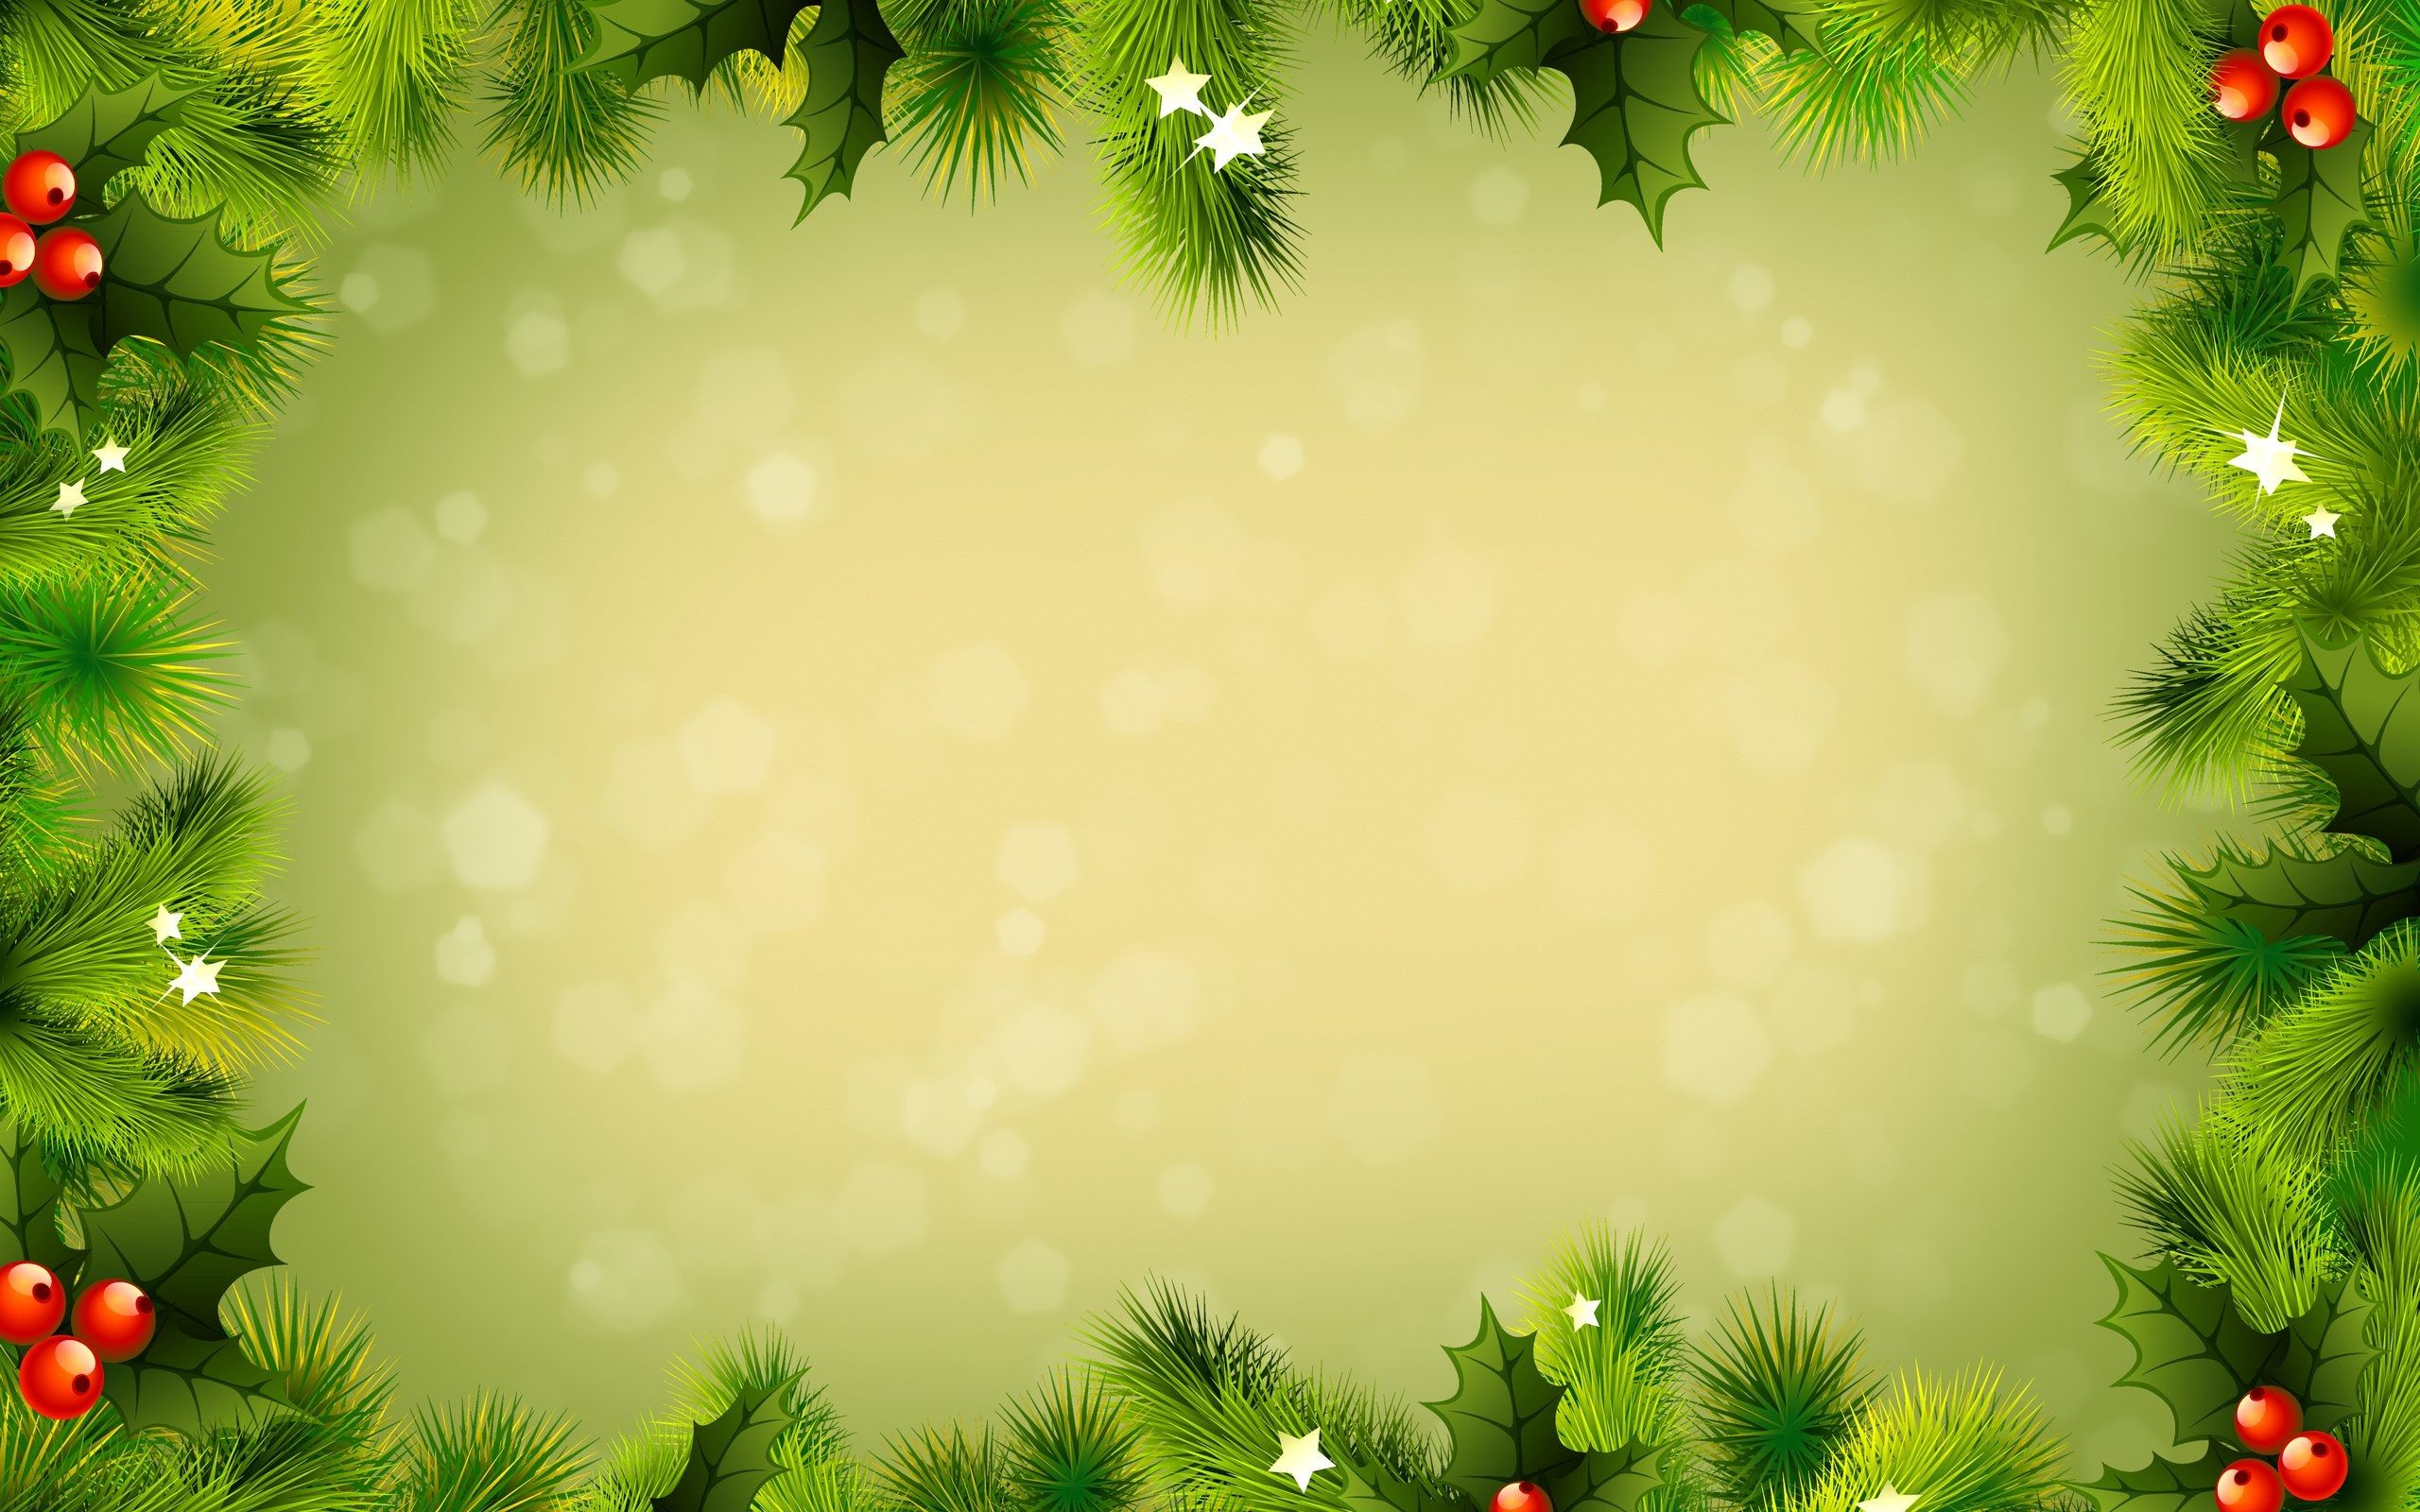 Christmas Background Free Large Images Christmas